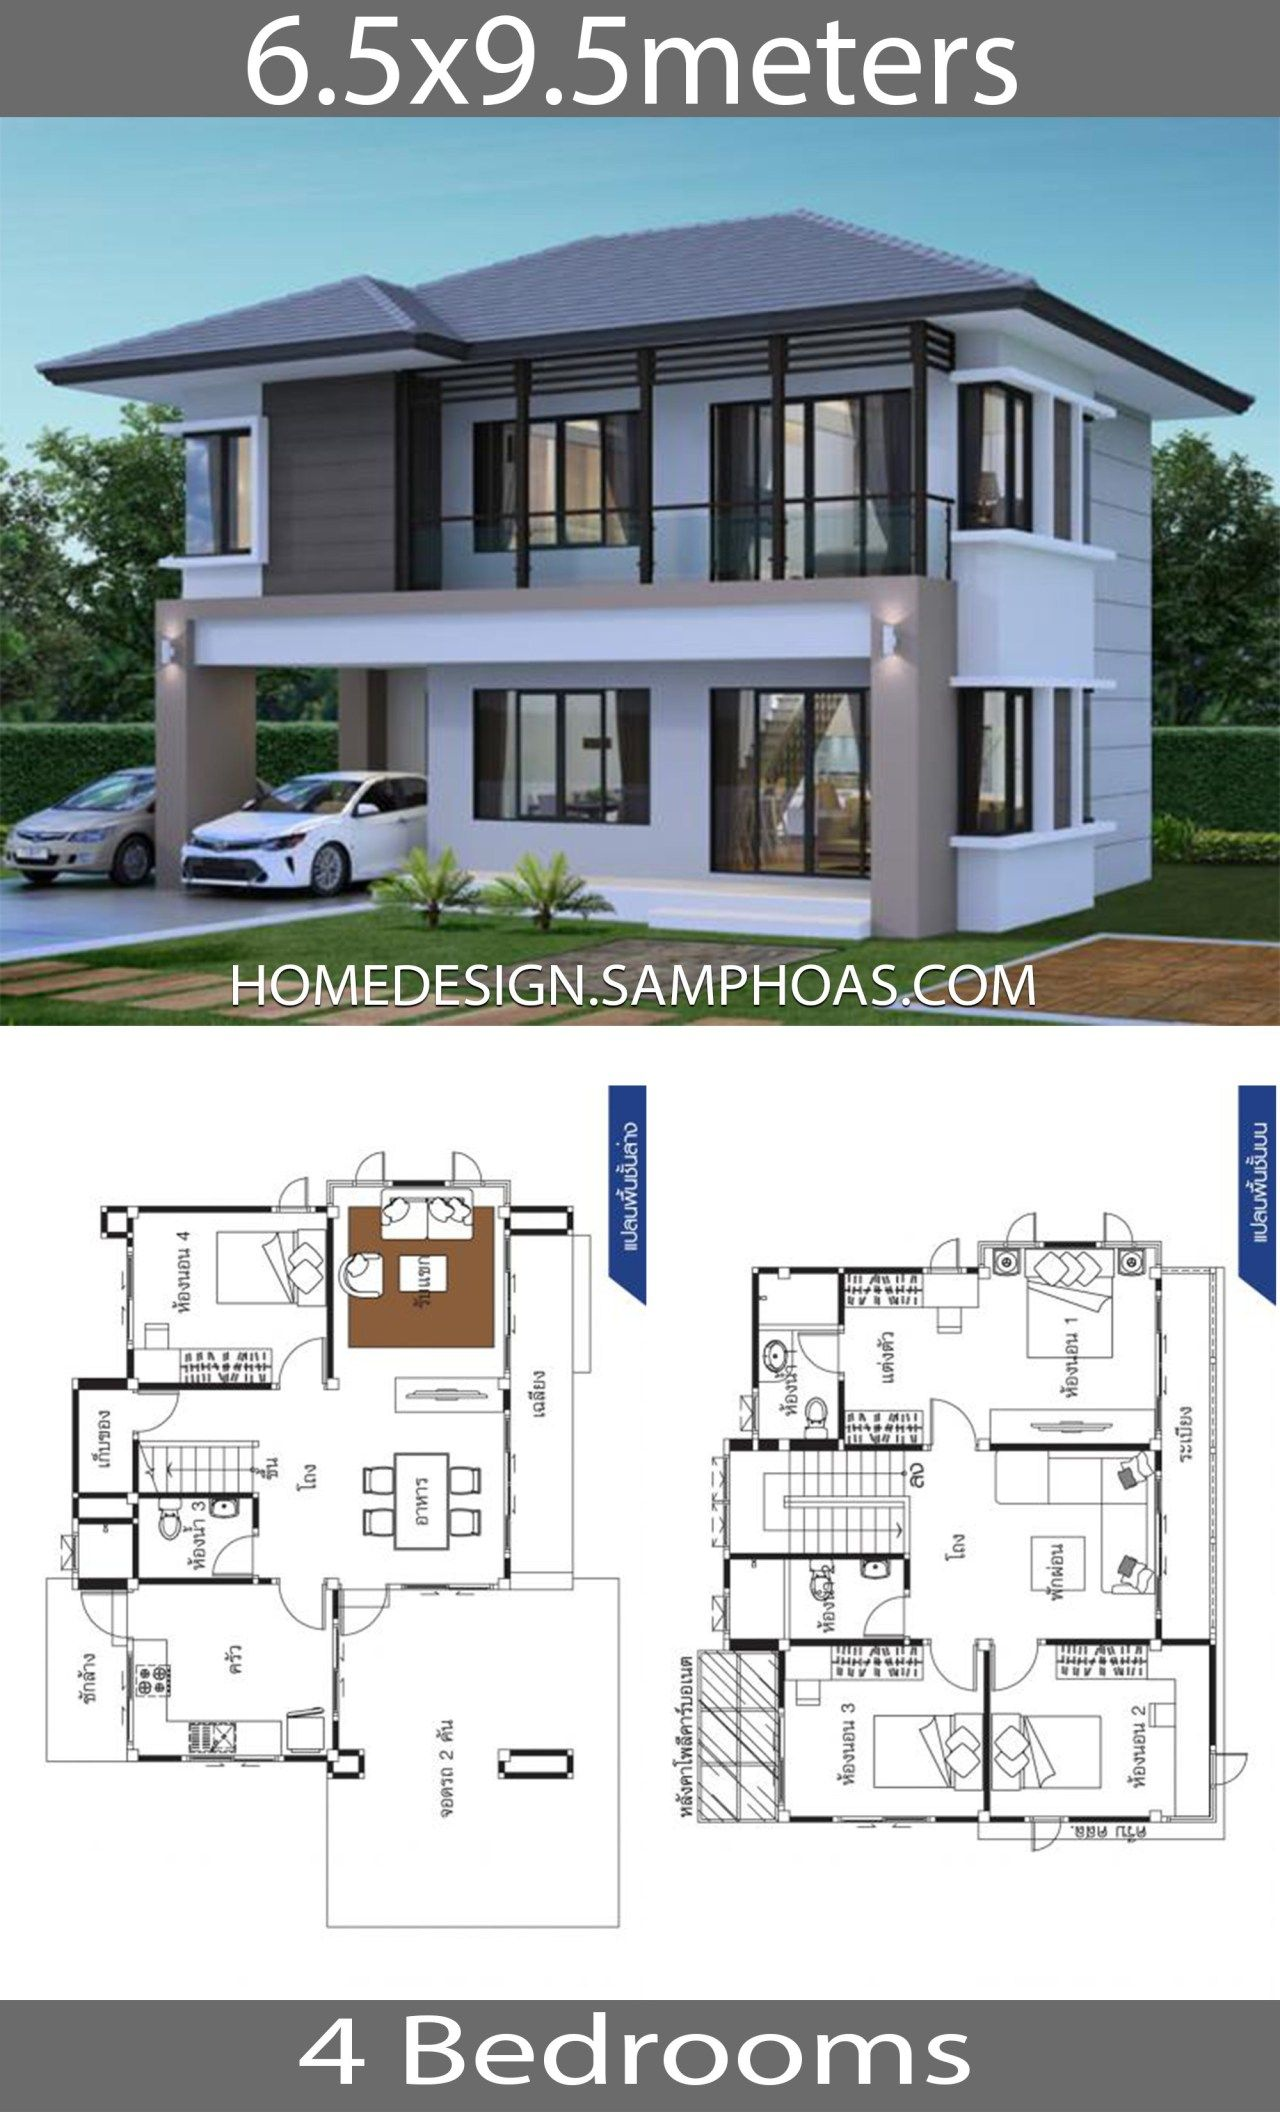 House Ideas 6 5x9 5m With 4 Bedrooms Model House Plan House Layout Plans House Plans